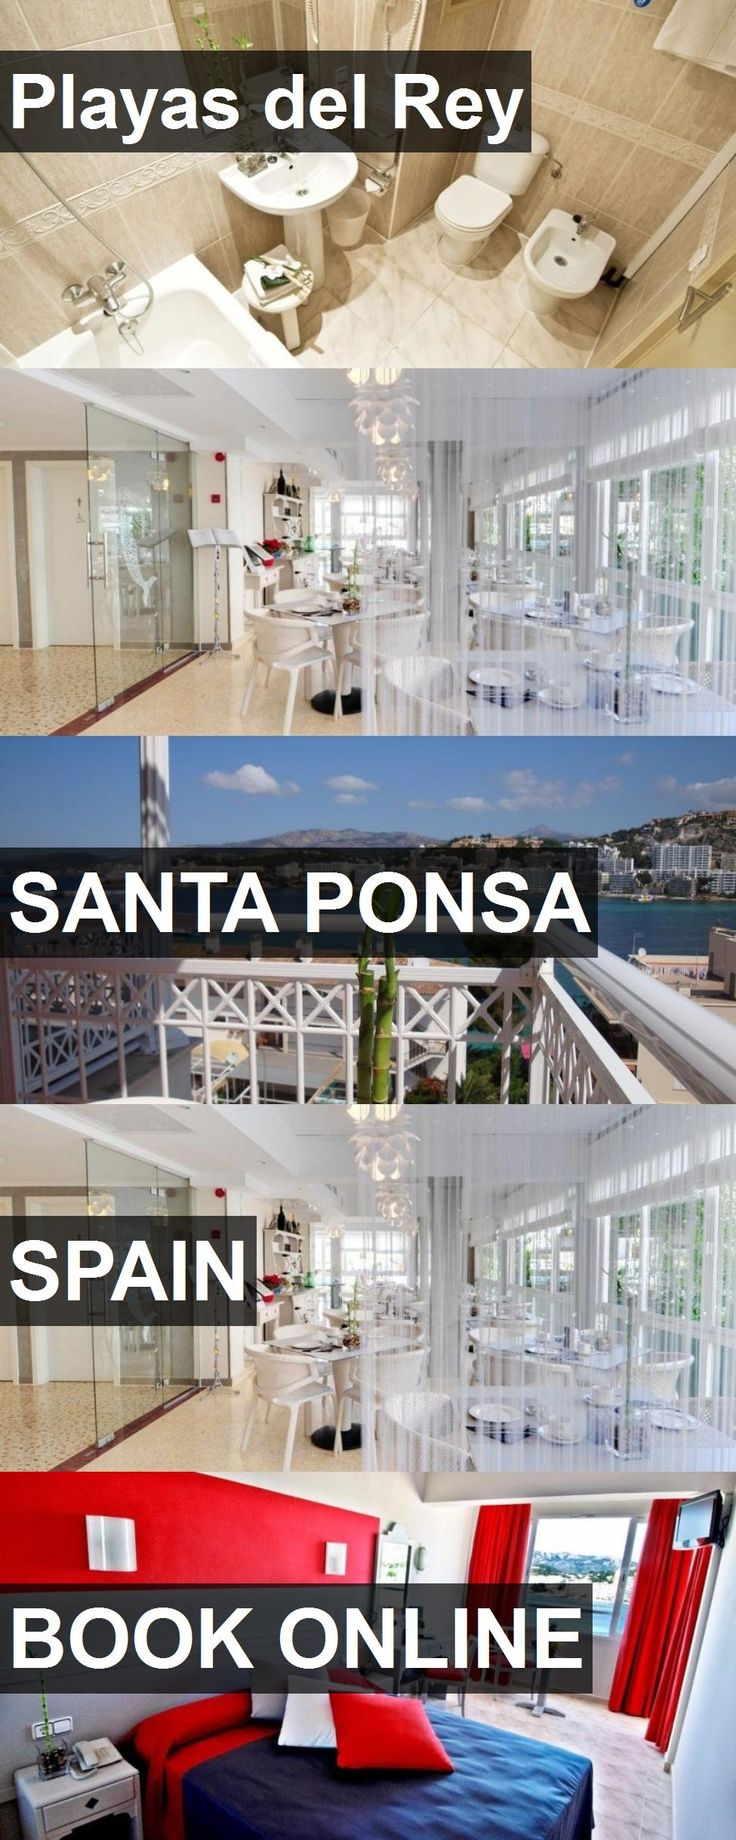 Hotel Playas del Rey in Santa Ponsa, Spain. For more information, photos, reviews and best prices please follow the link. #Spain #SantaPonsa #travel #vacation #hotel